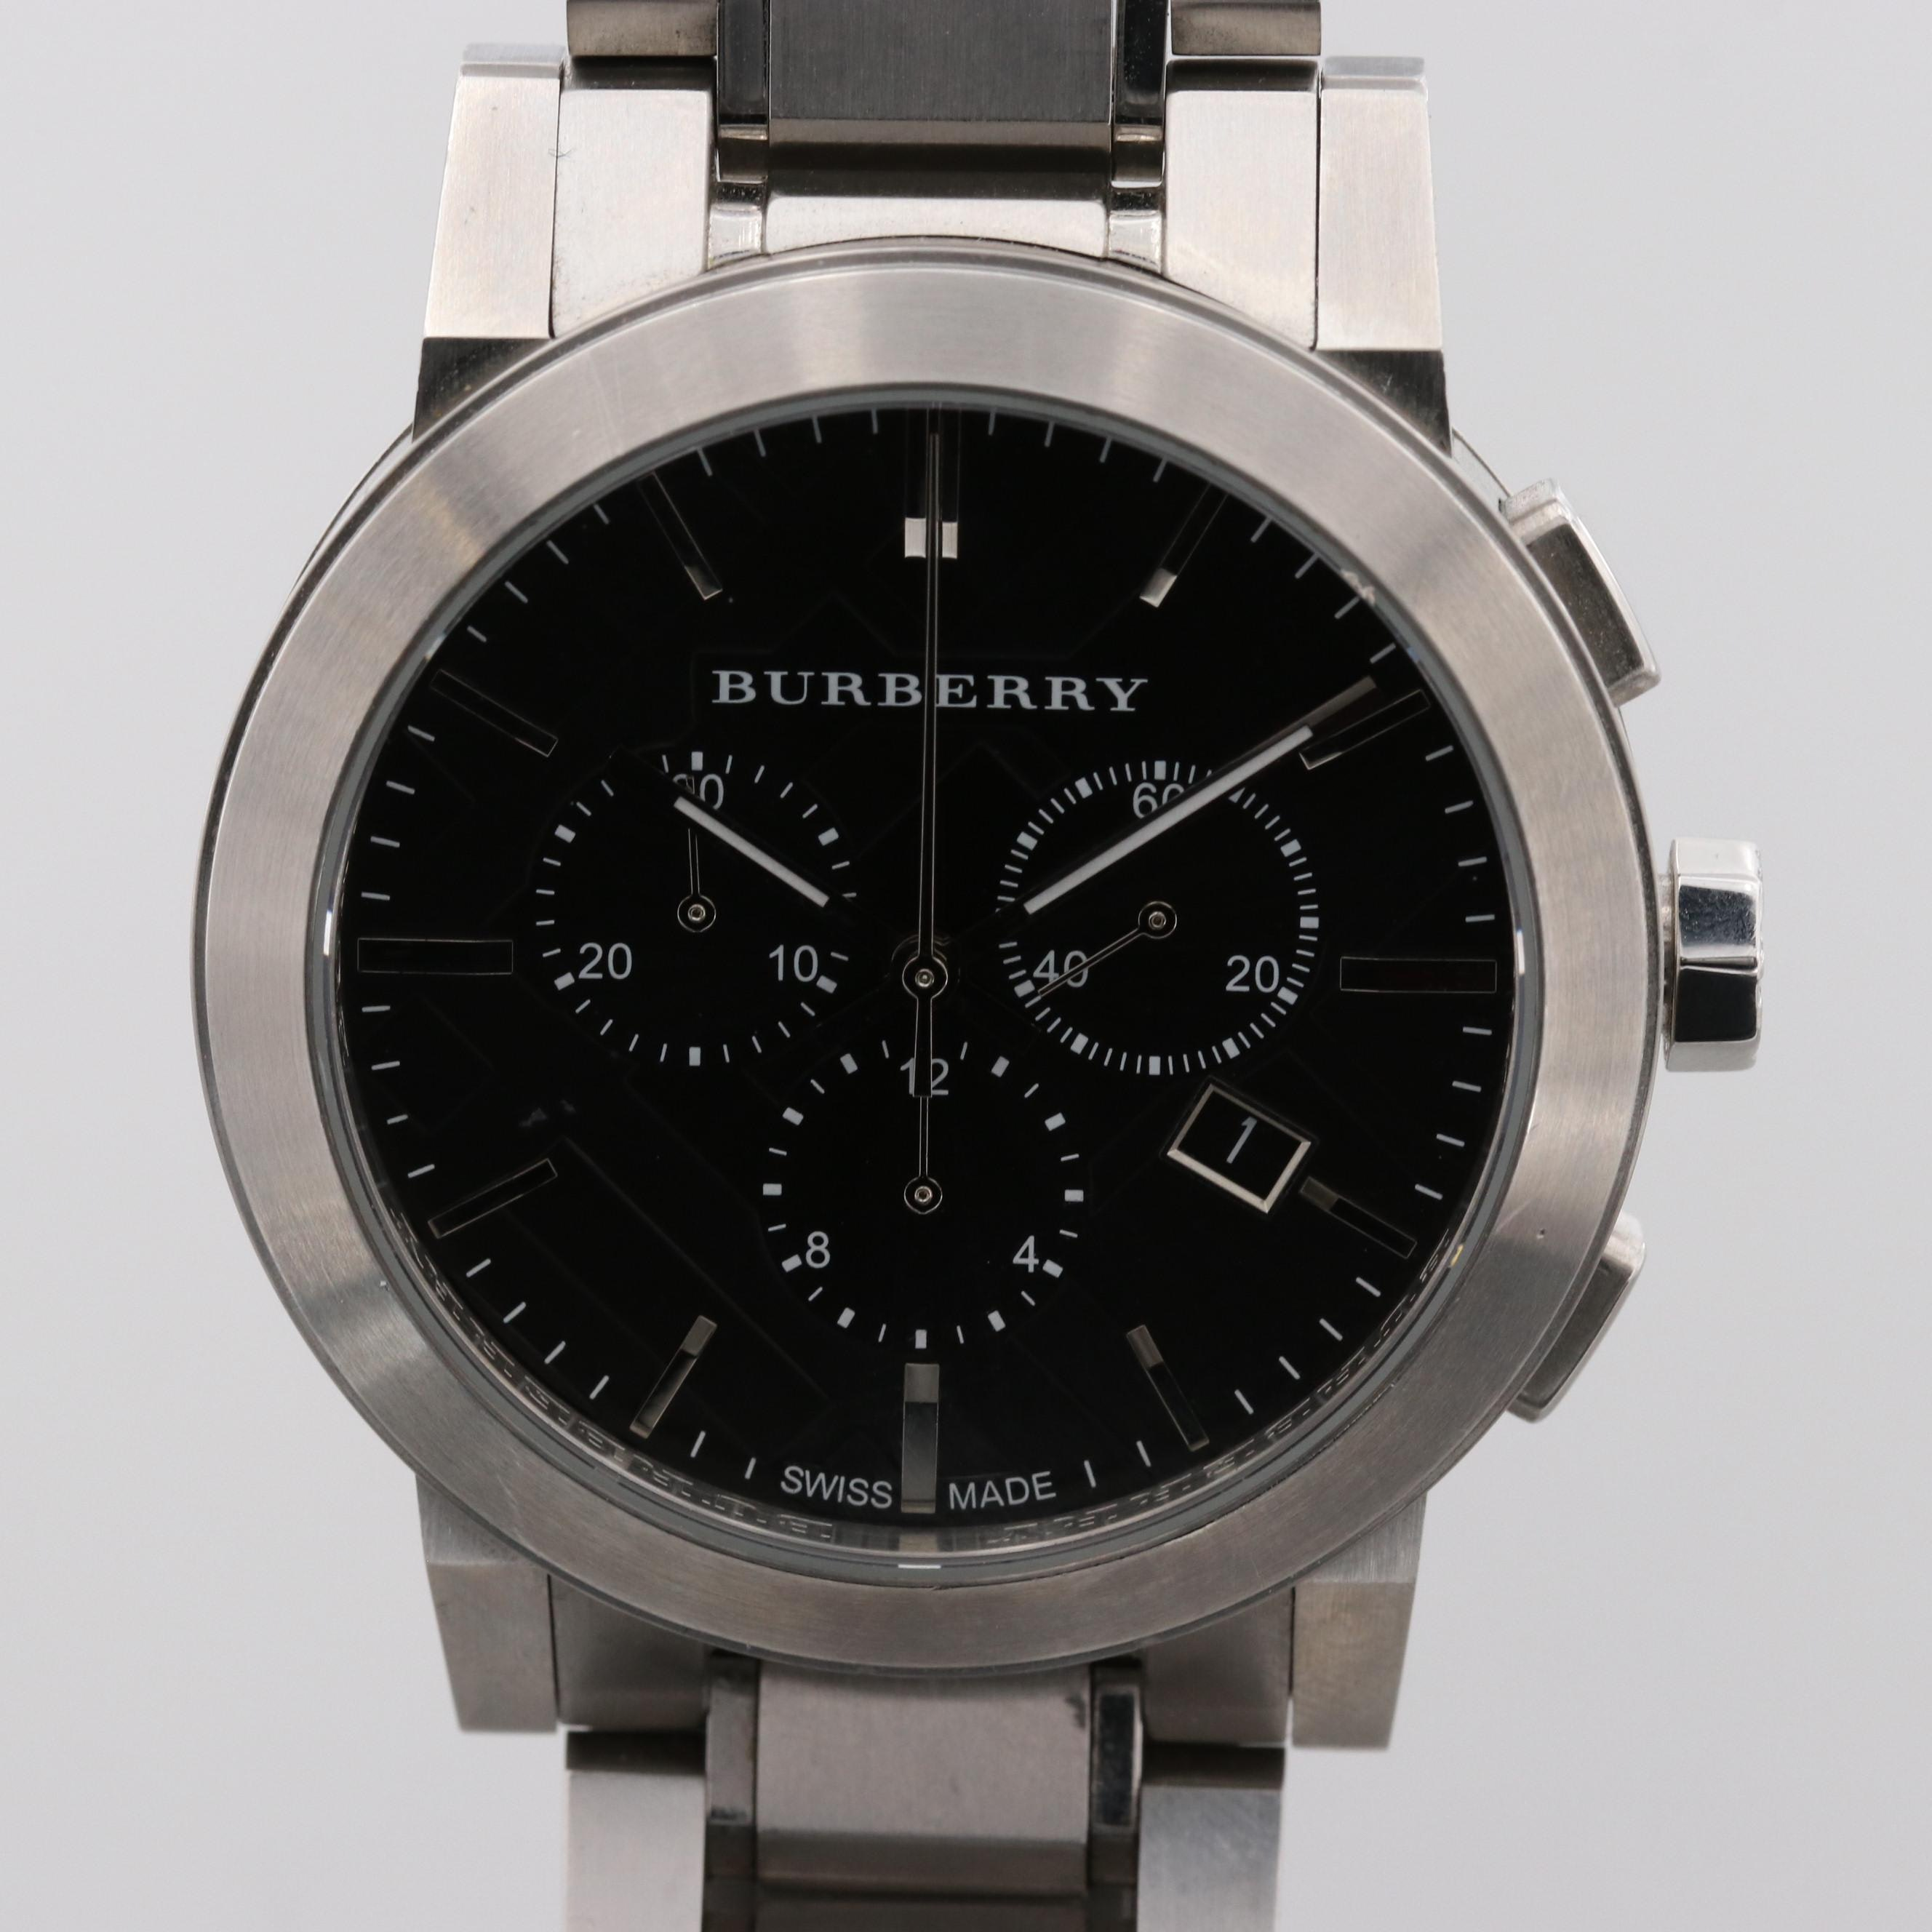 Burberry Stainless Steel Chronograph Wristwatch With Date Window